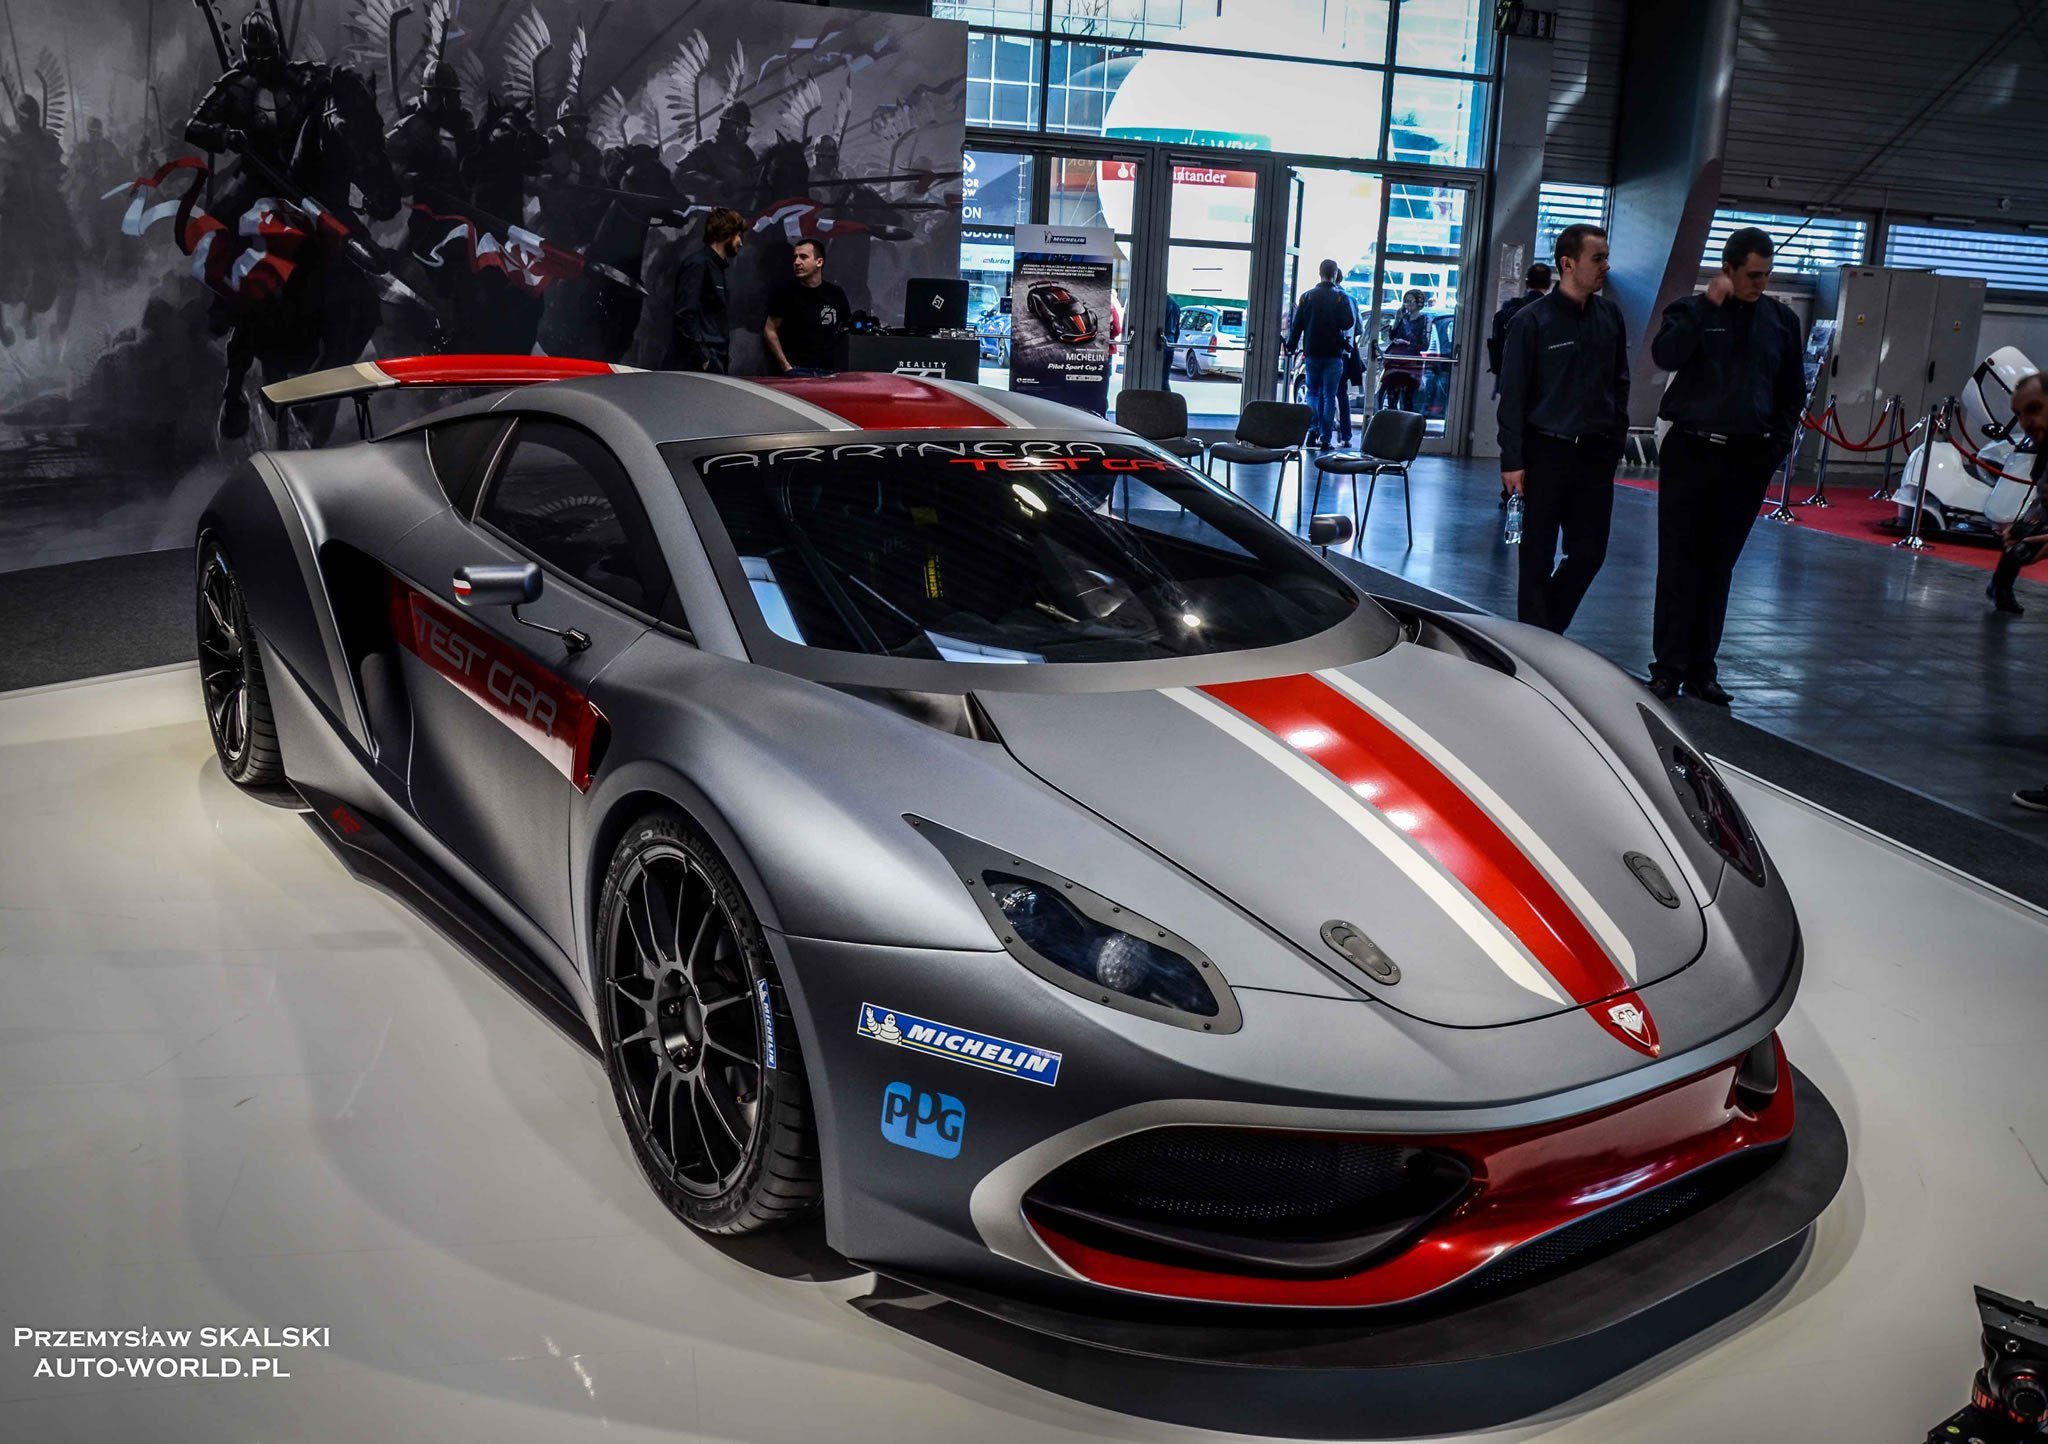 Latest 2015 Arrinera Hussarya Test Car Front Photo Size 2048 X Free Download